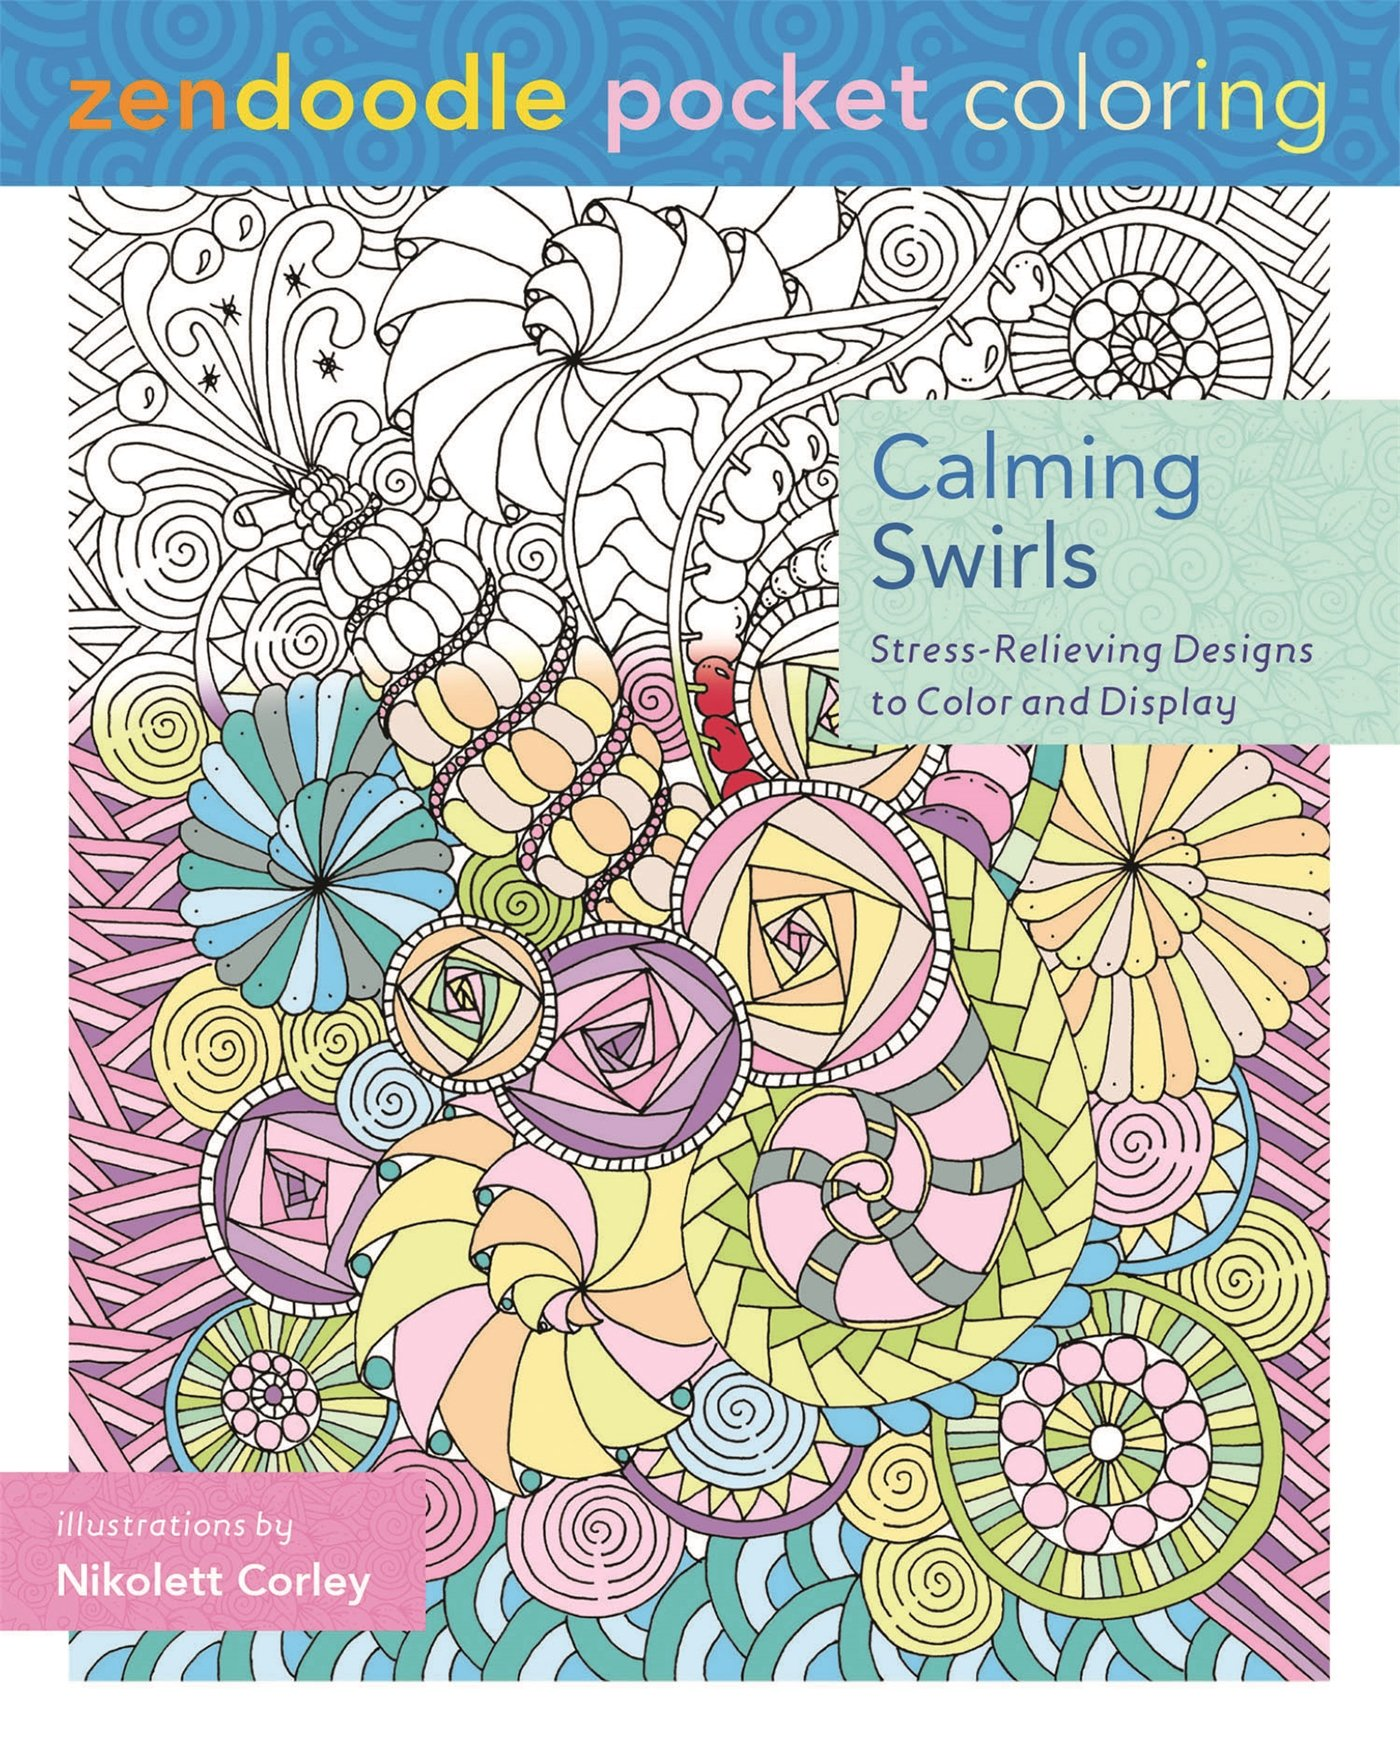 Zendoodle coloring enchanting gardens - Amazon Com Zendoodle Pocket Coloring Calming Swirls Stress Relieving Designs To Color And Display 9781250105110 Nikolett Corley Books